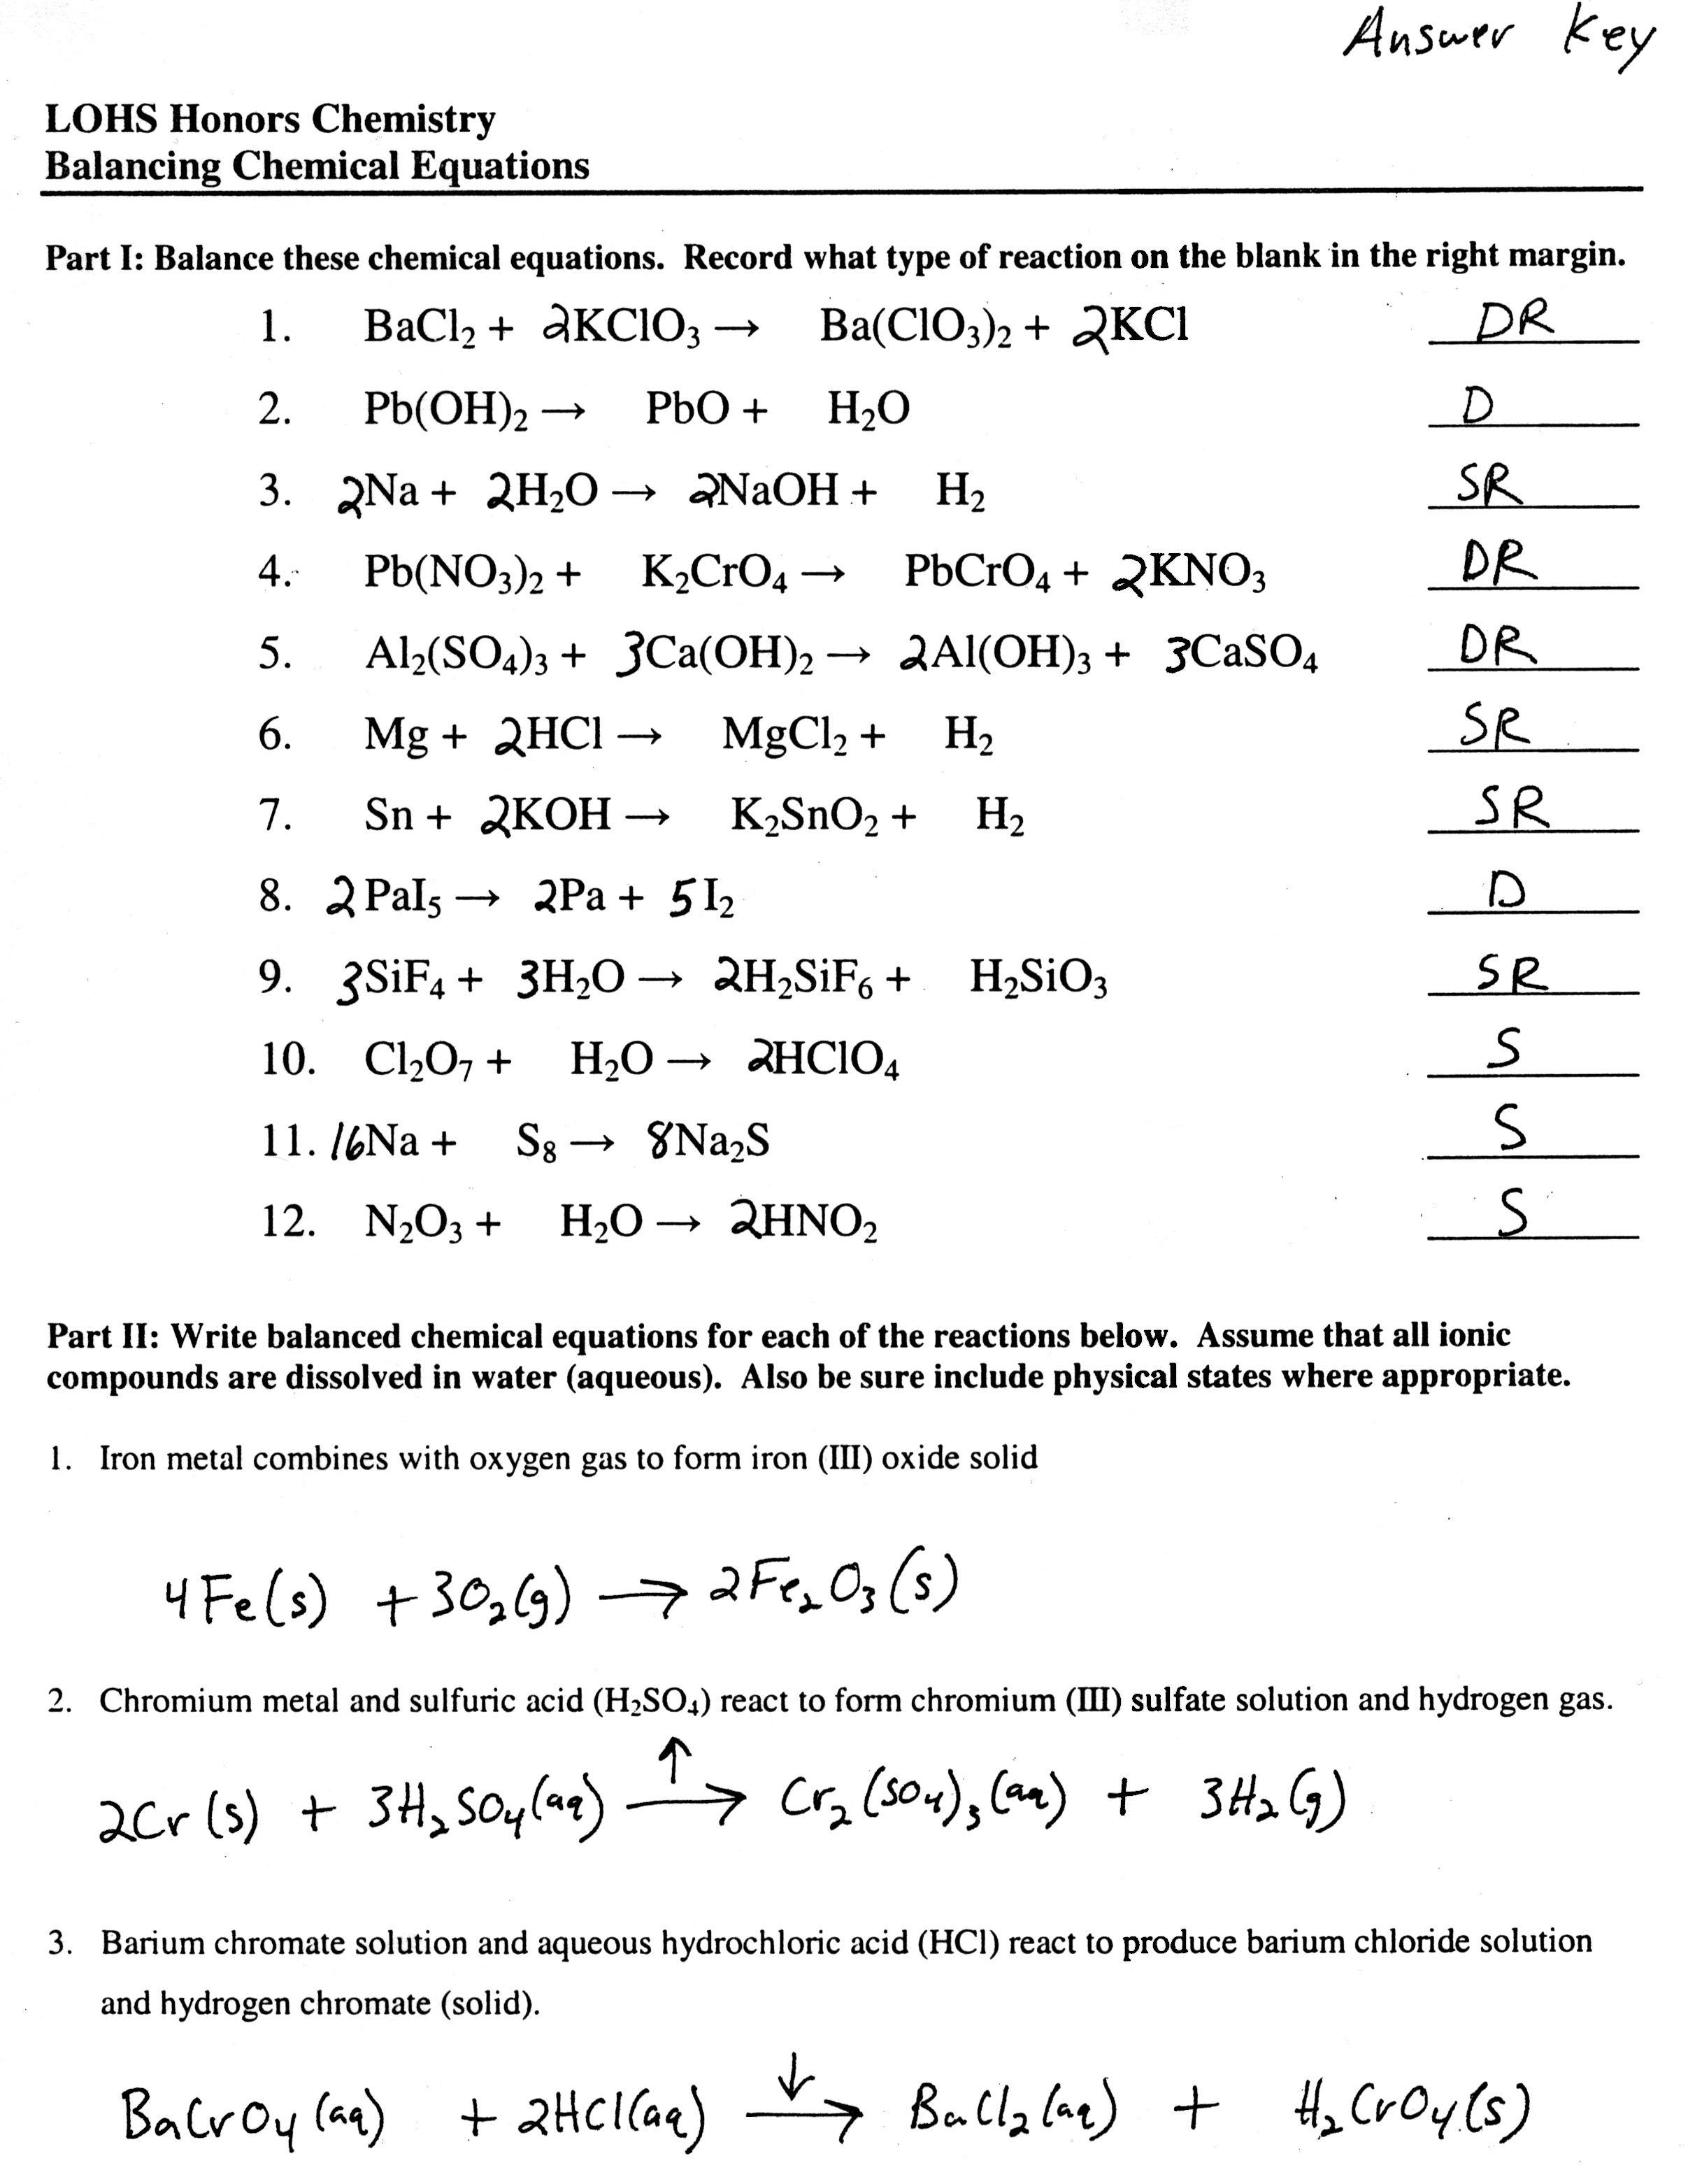 Balancing Equations Worksheet Health And Fitness